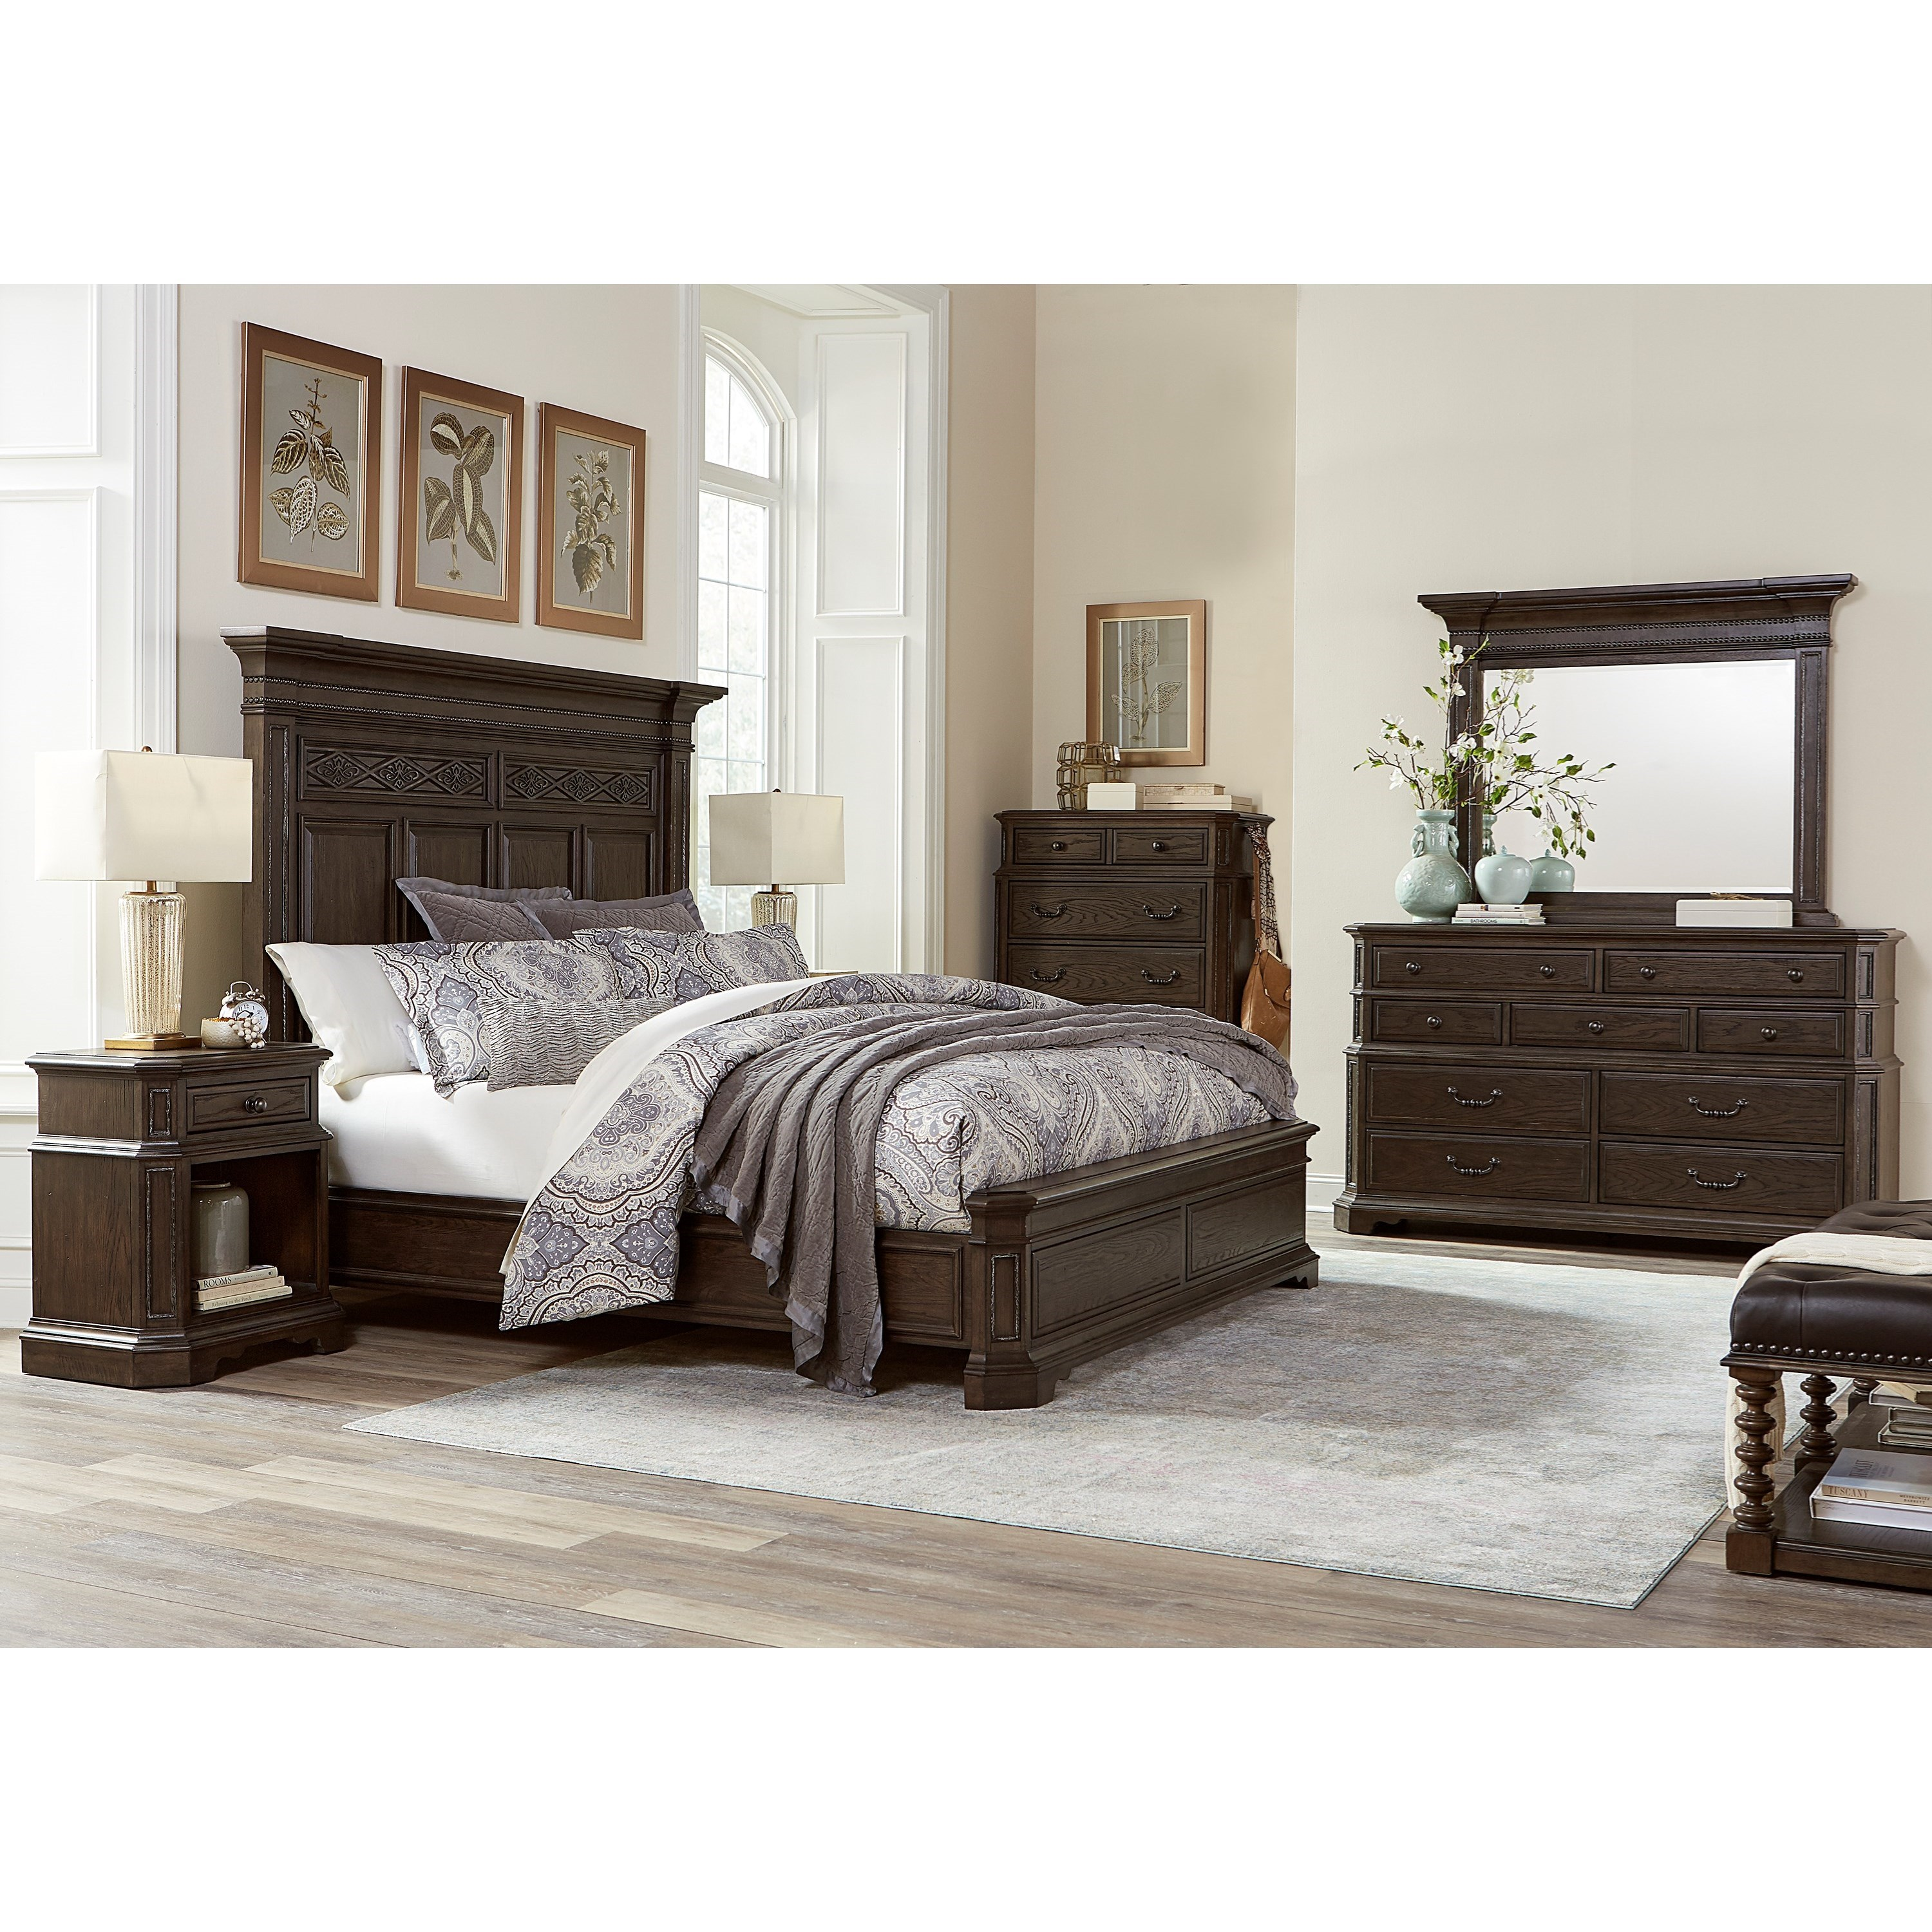 Foxhill California King Bedroom Group by Aspenhome at Walker's Furniture